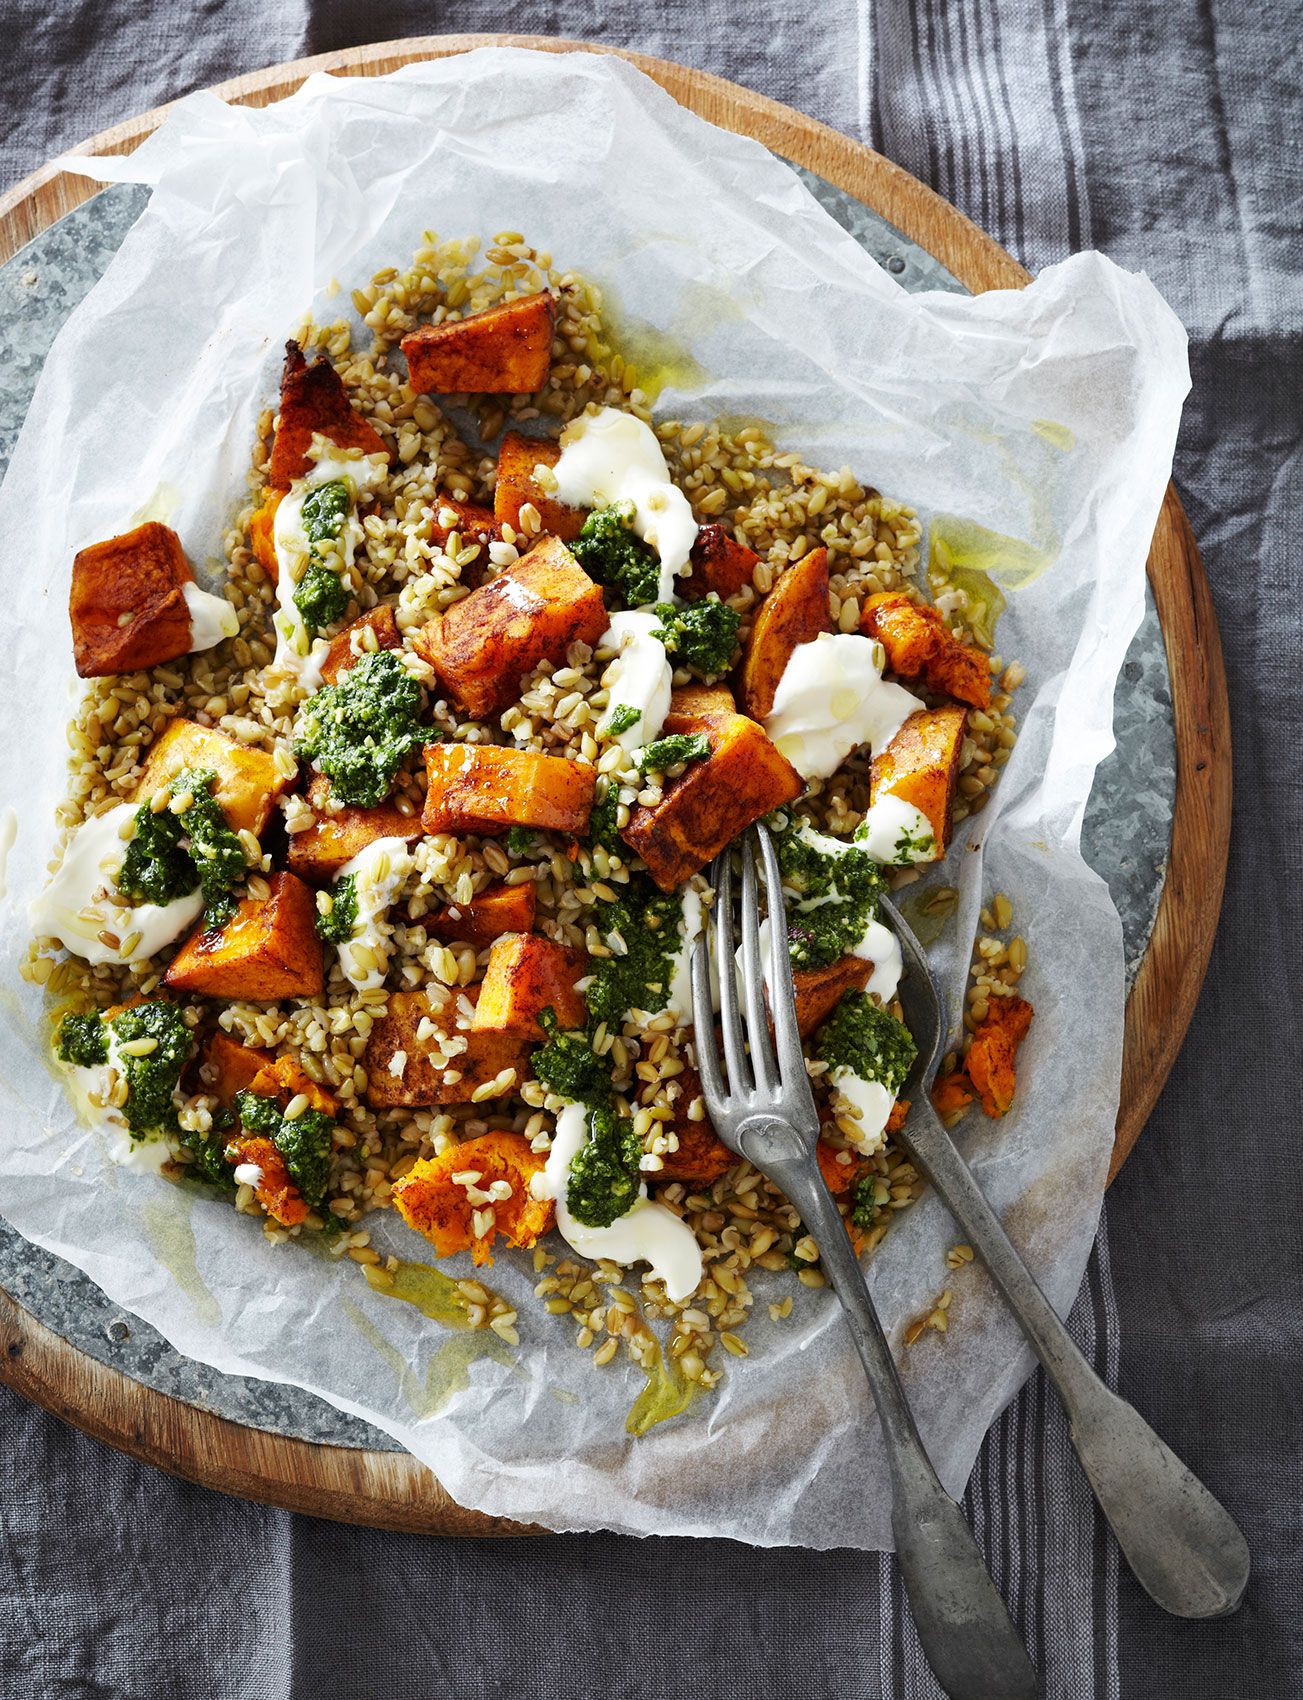 Penguin_Salads_Grains_ButternutFreekah